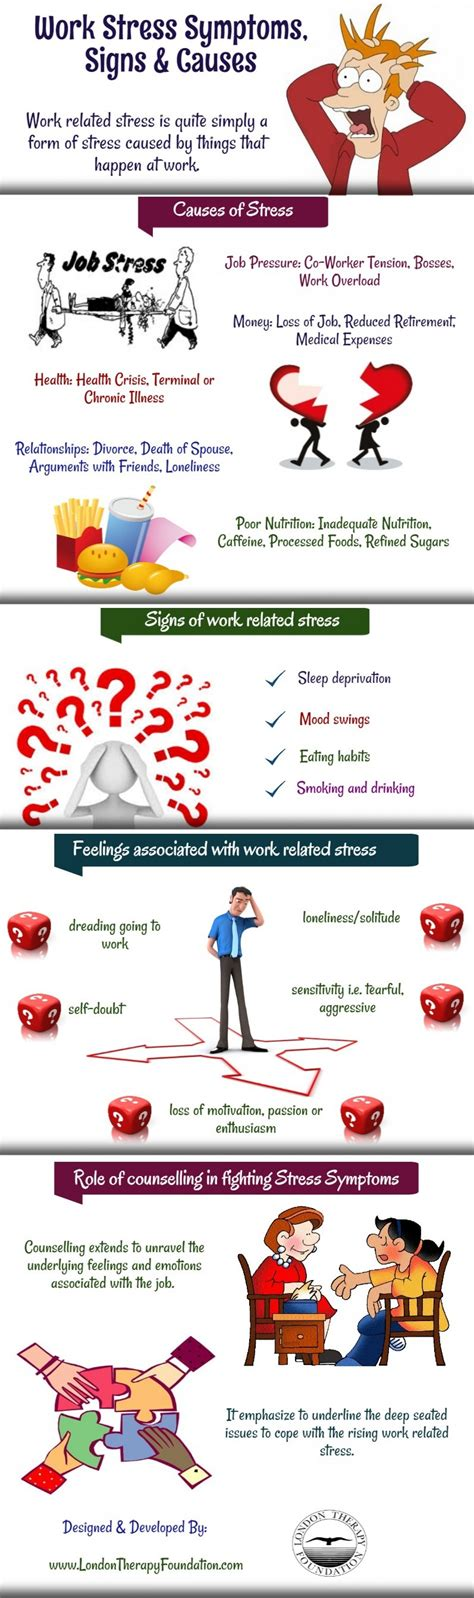 Work Stress Symptoms, Signs, & Causes  Visual. Causes Symptoms Signs. Isosceles Signs Of Stroke. Facial Skin Signs. Environmental Signs Of Stroke. Hyperemic Signs. Segregation Signs. Scorpion Signs. Quality Signs Of Stroke